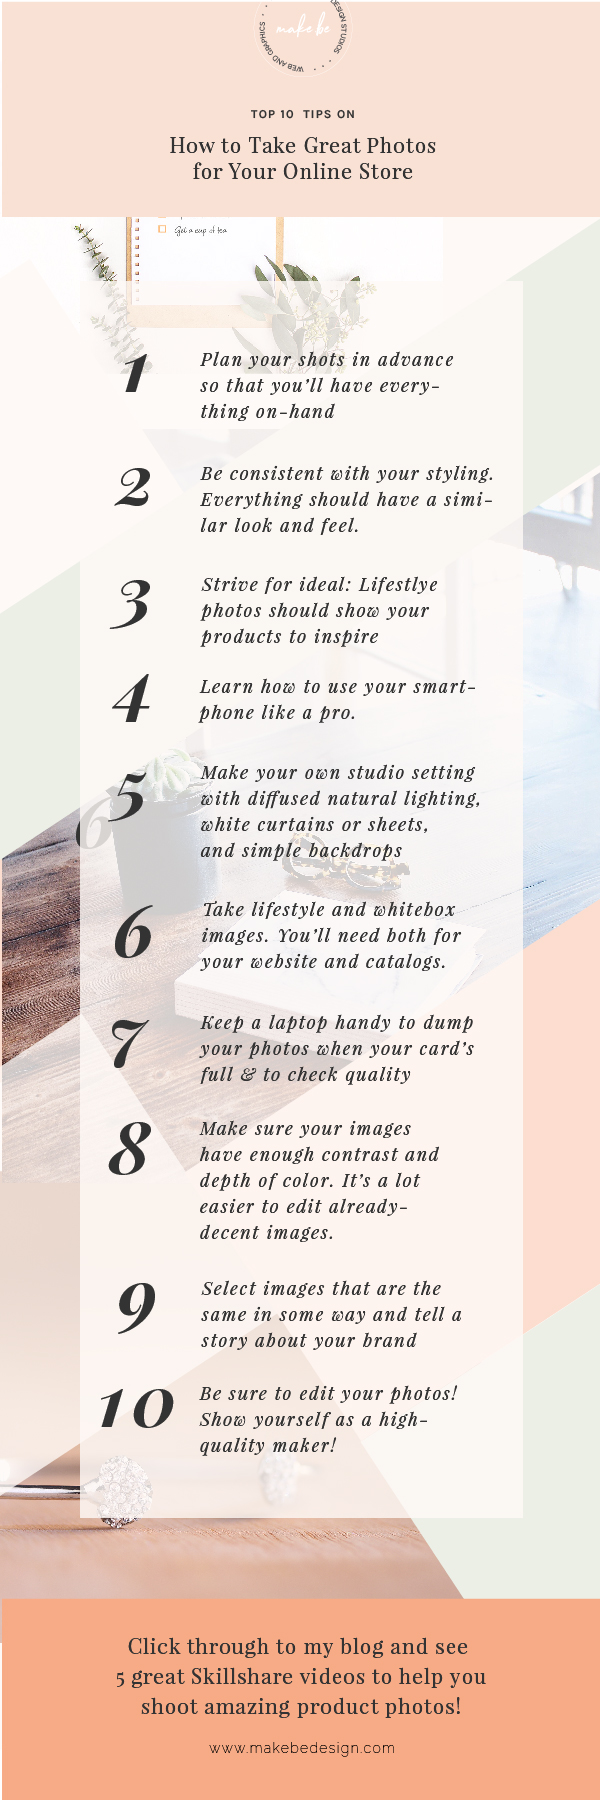 Top-Ten-Tips-For-Taking-Your-Own-Product-Photos.jpg